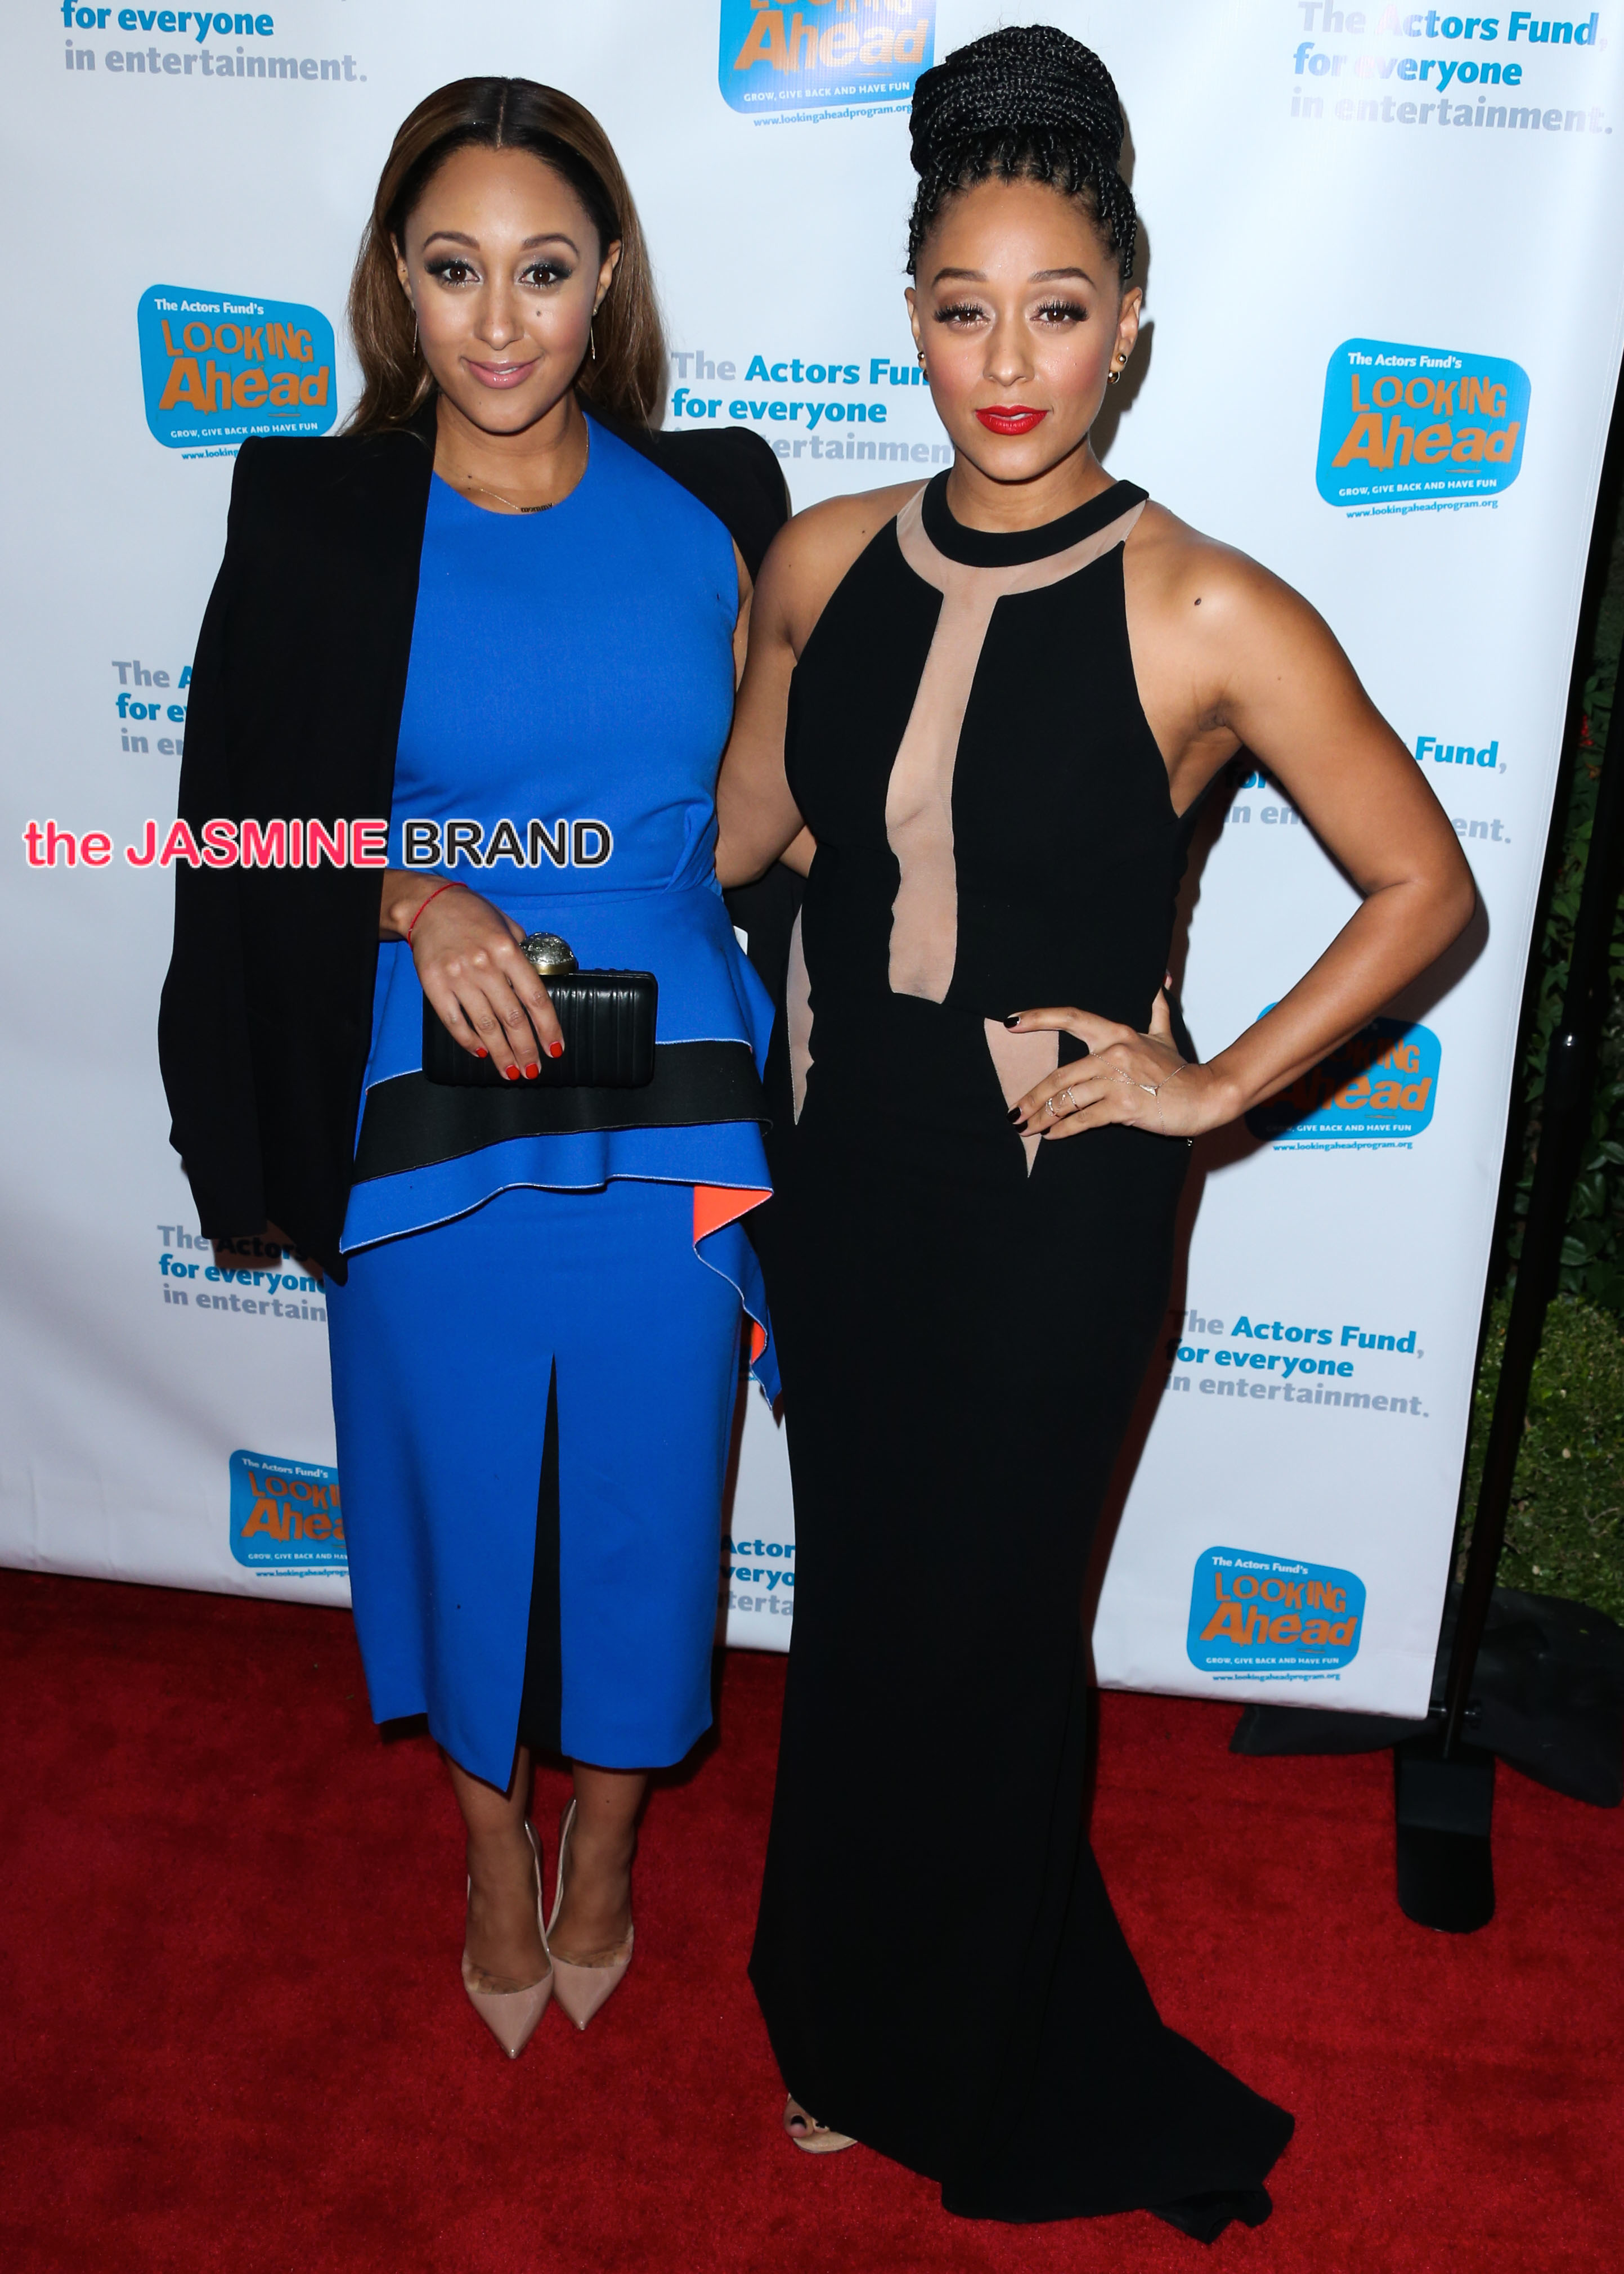 Tia Mowry and Tamera Mowry arrive at The Looking Ahead Awards